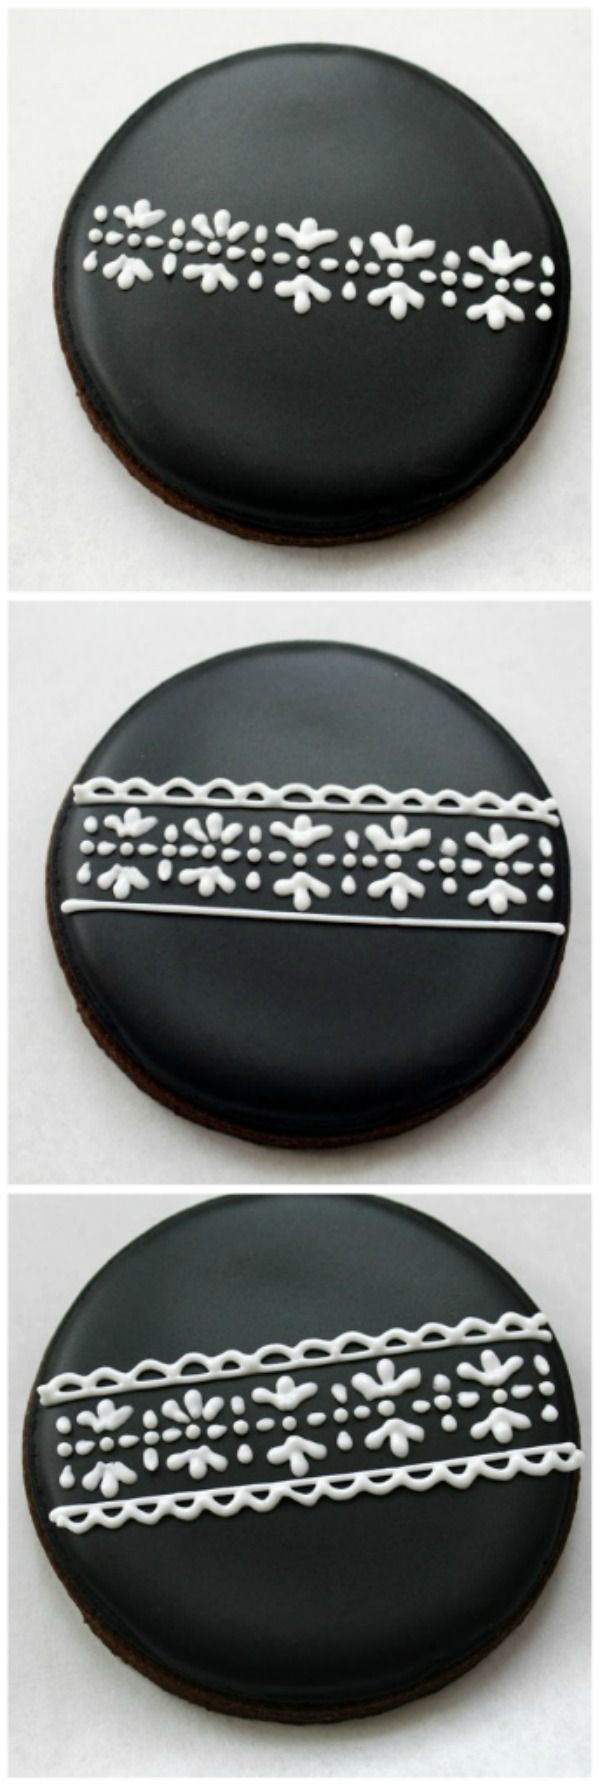 piping lace on cookies 3